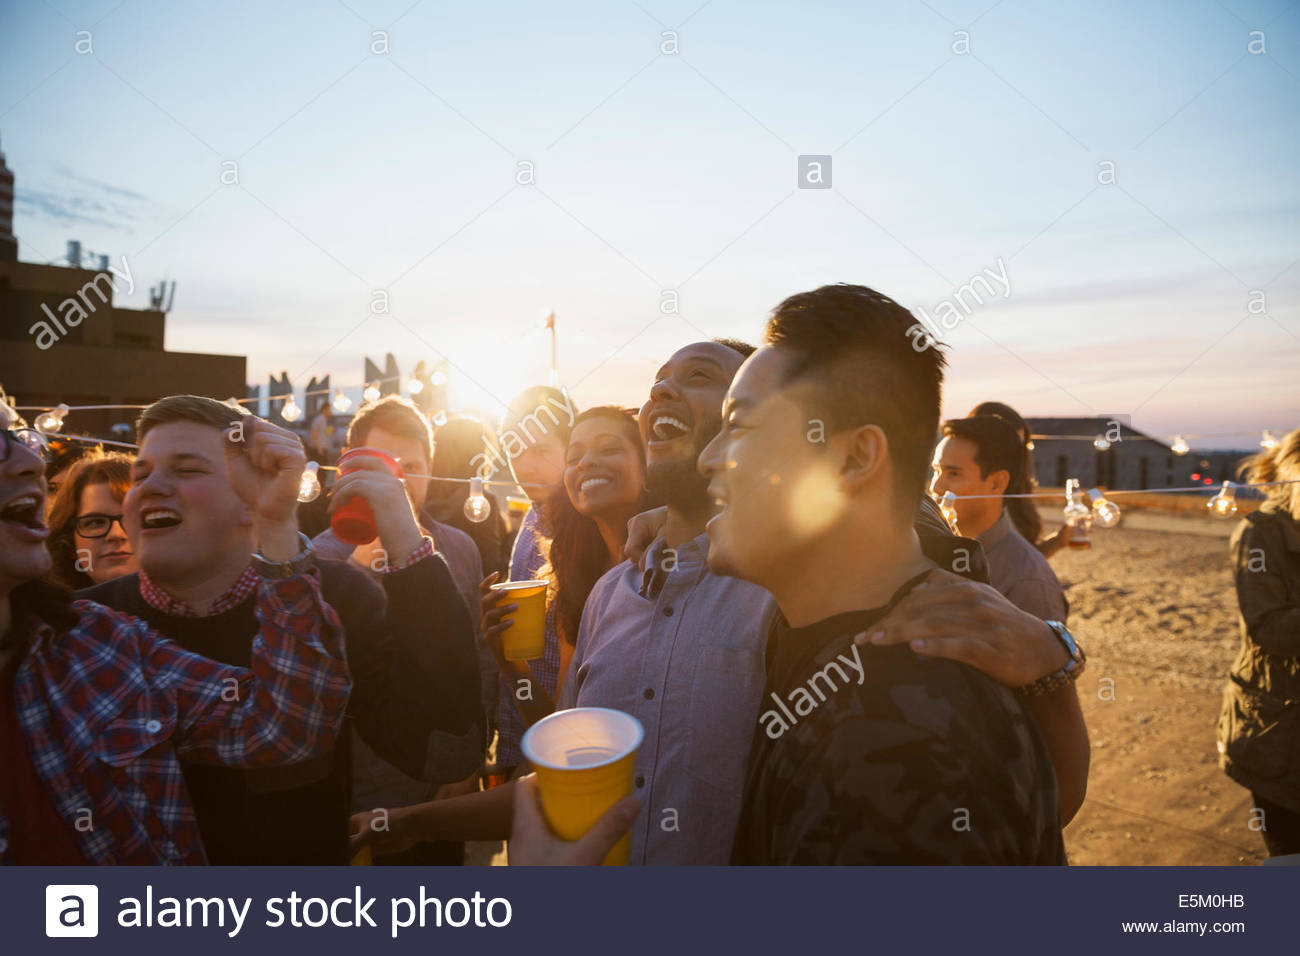 Friends enjoying urban rooftop party - Stock Image